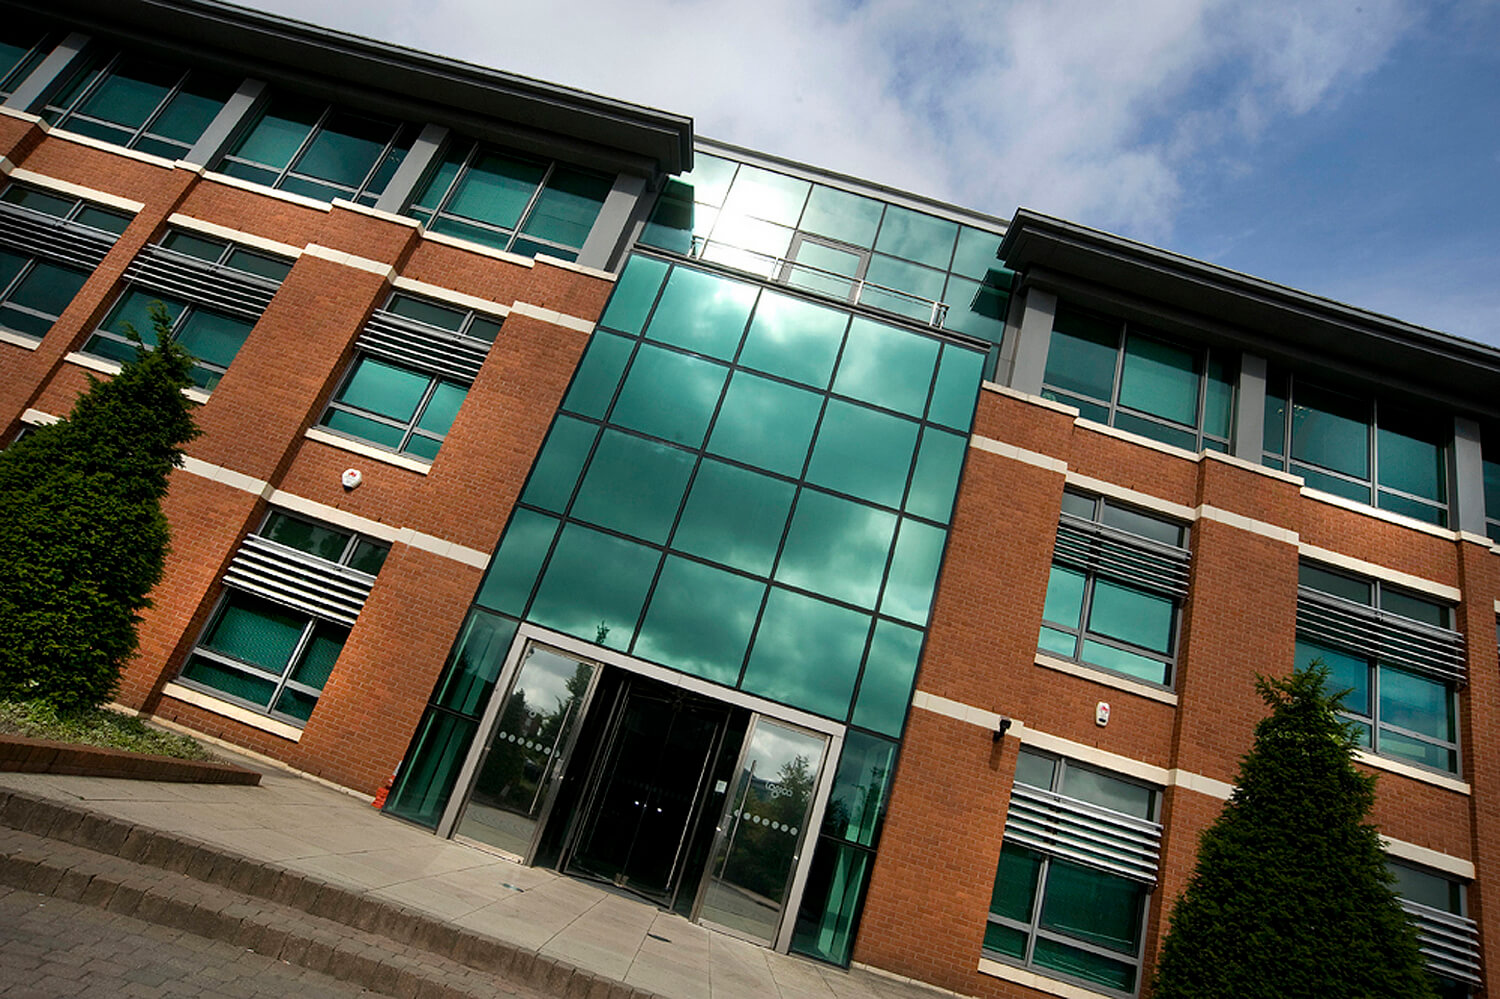 Industrial and commercial property, professional architectural photography in Birmingham